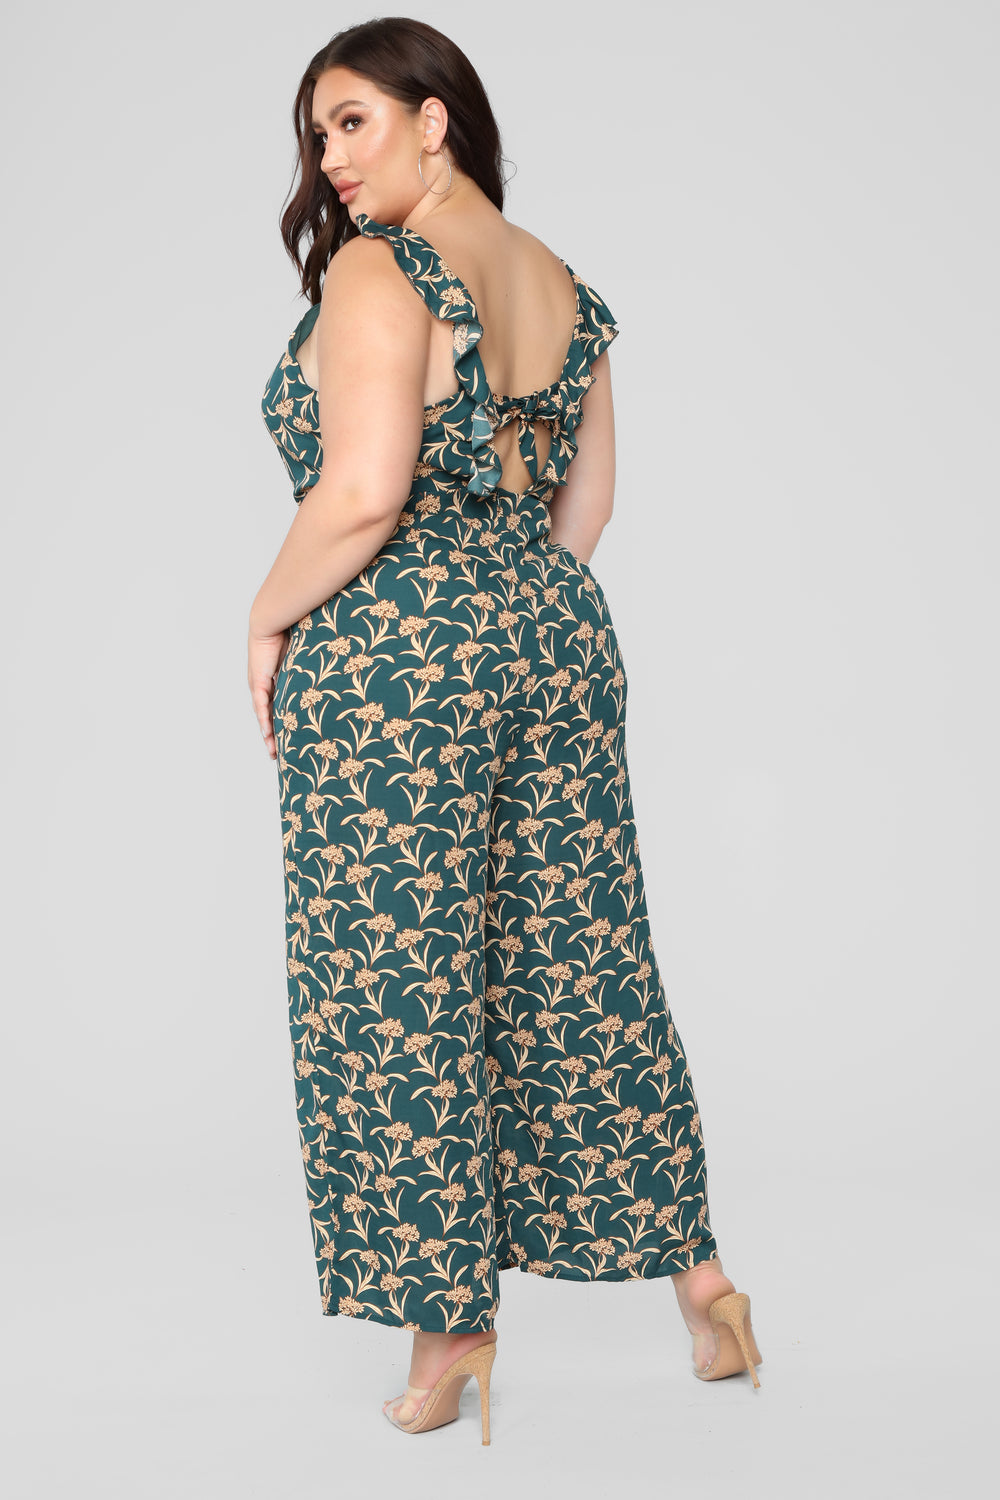 Picnic Date Floral Jumpsuit - Hunter Green